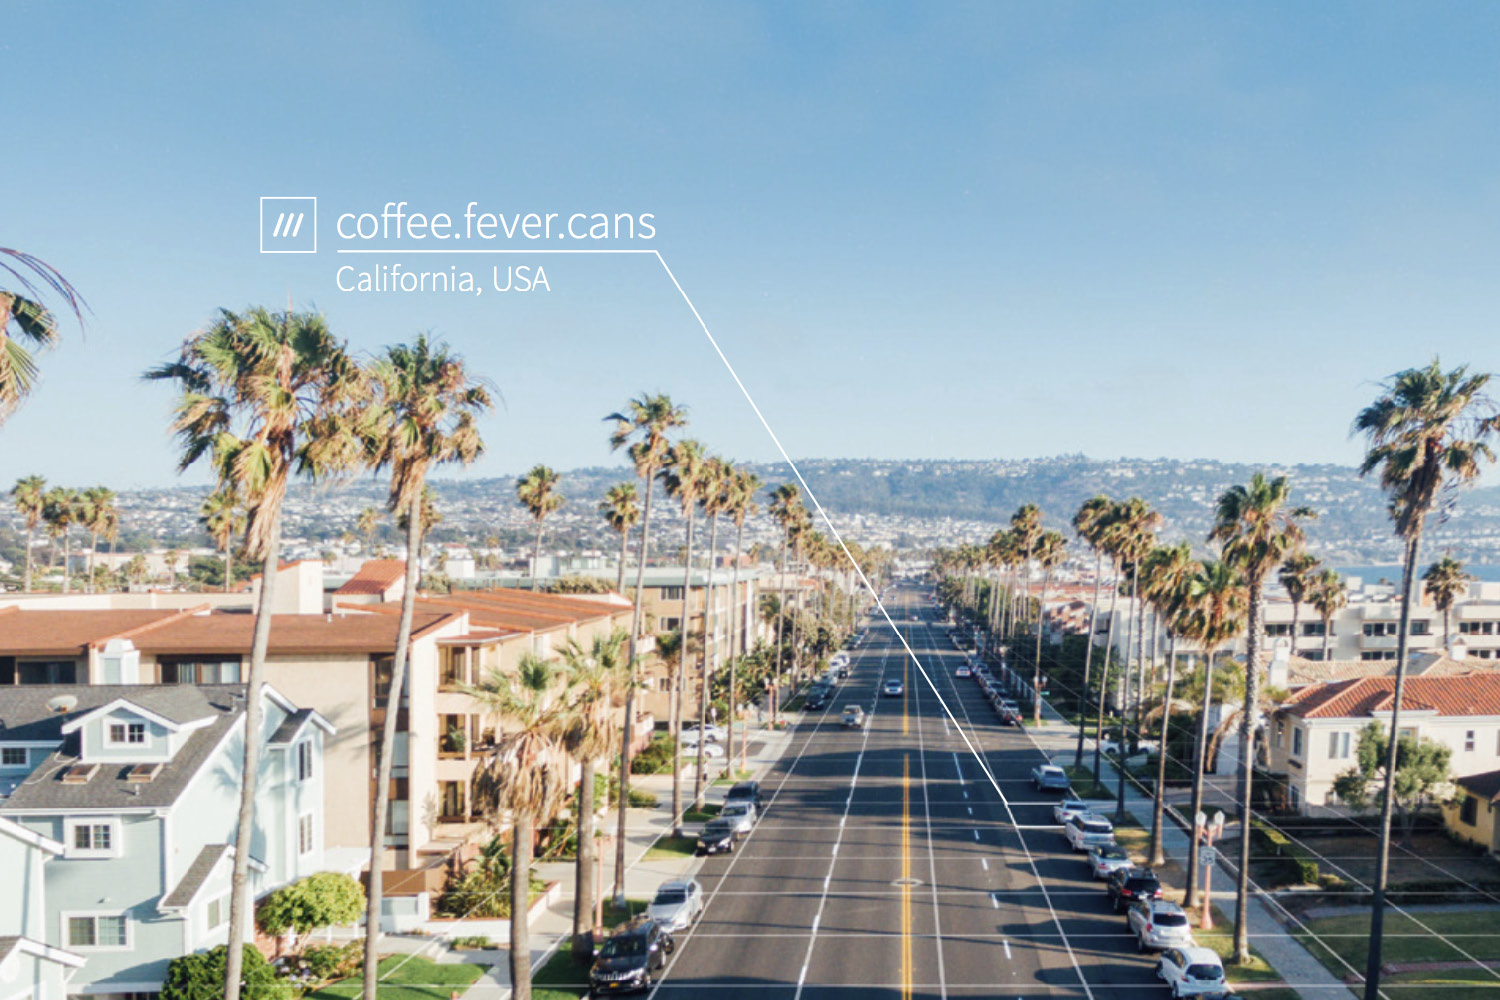 wide road with tall palm trees and houses either side at 3 word address coffee.fever.cans